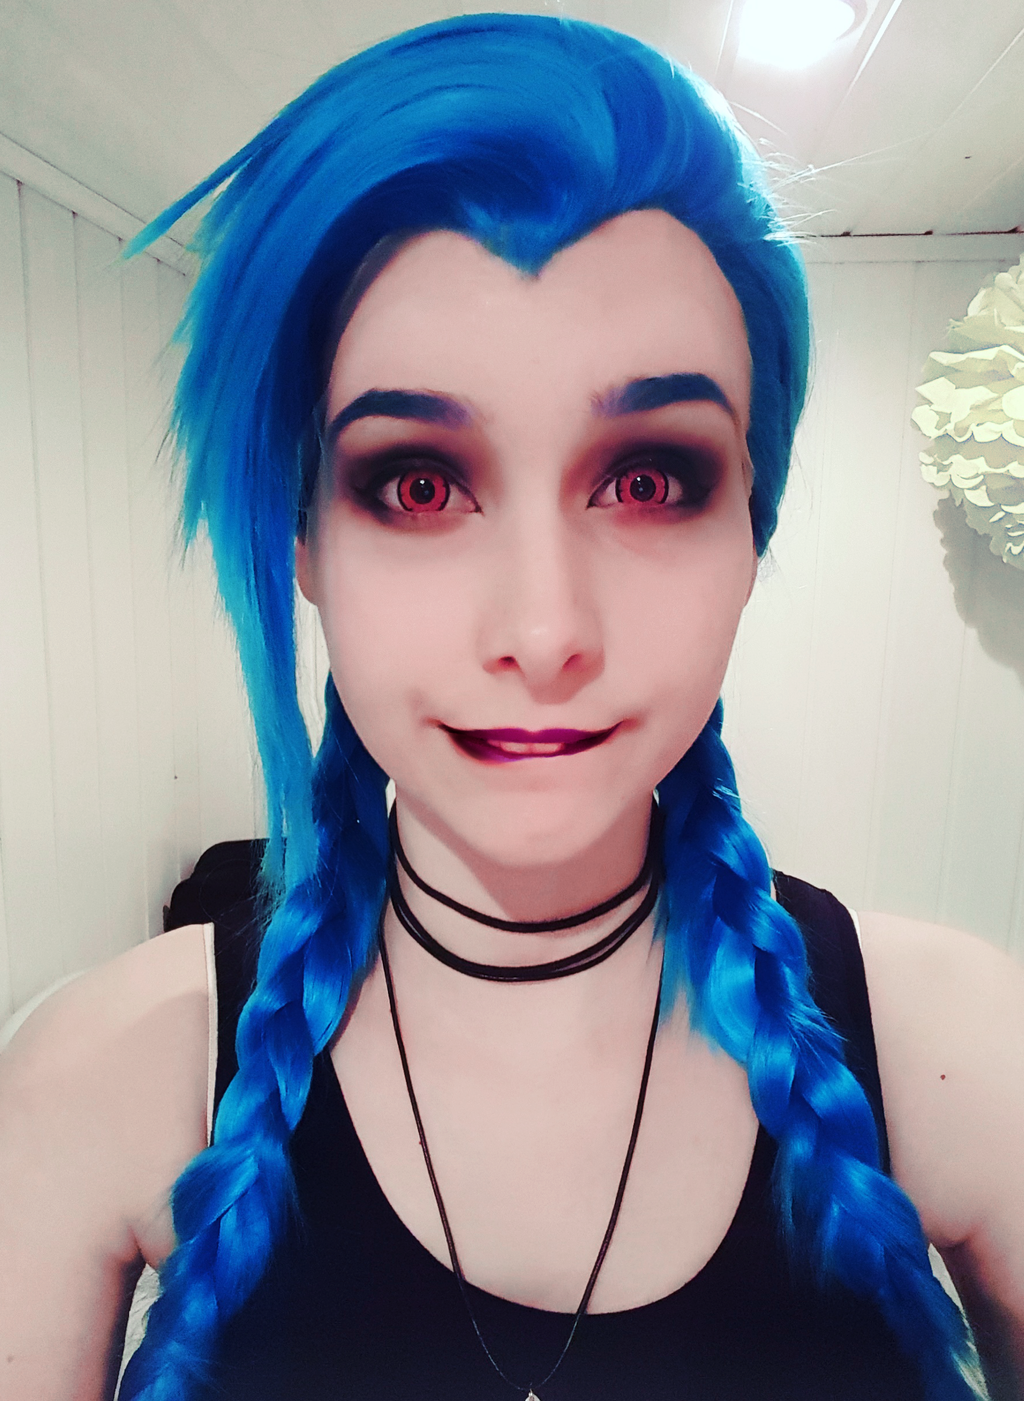 Jinx nude Nude Photos